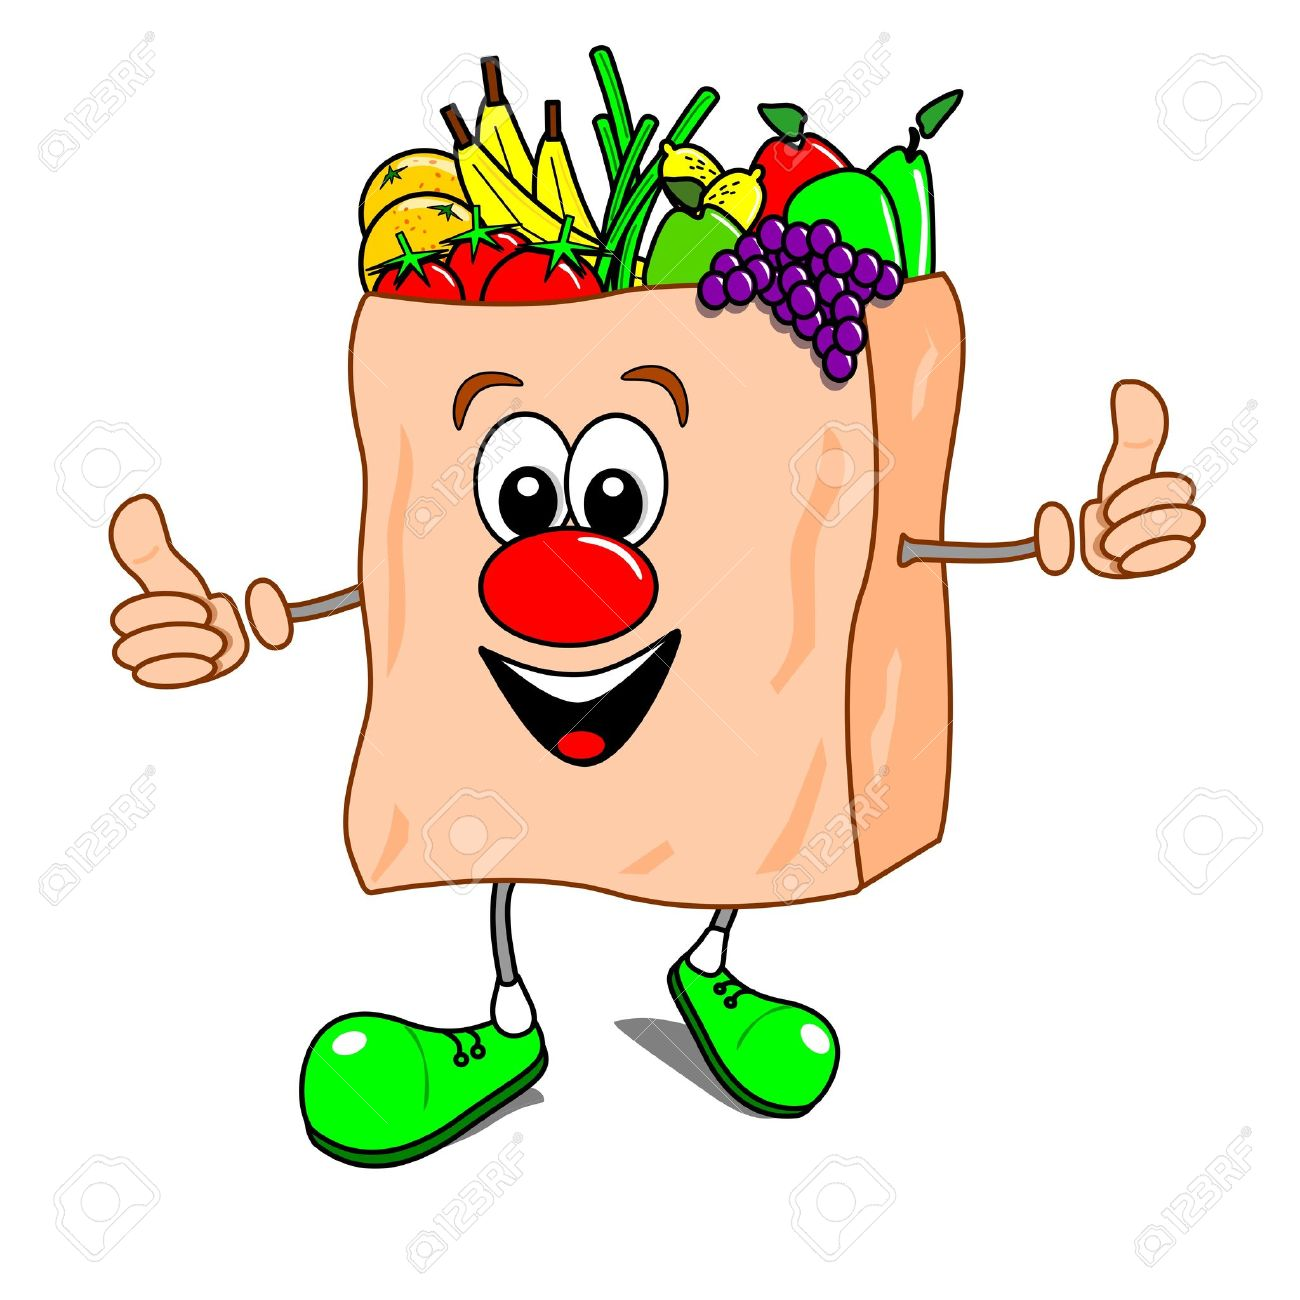 Cartoon Illustration Of A Shopping Bag With Fruit And Vegetables.